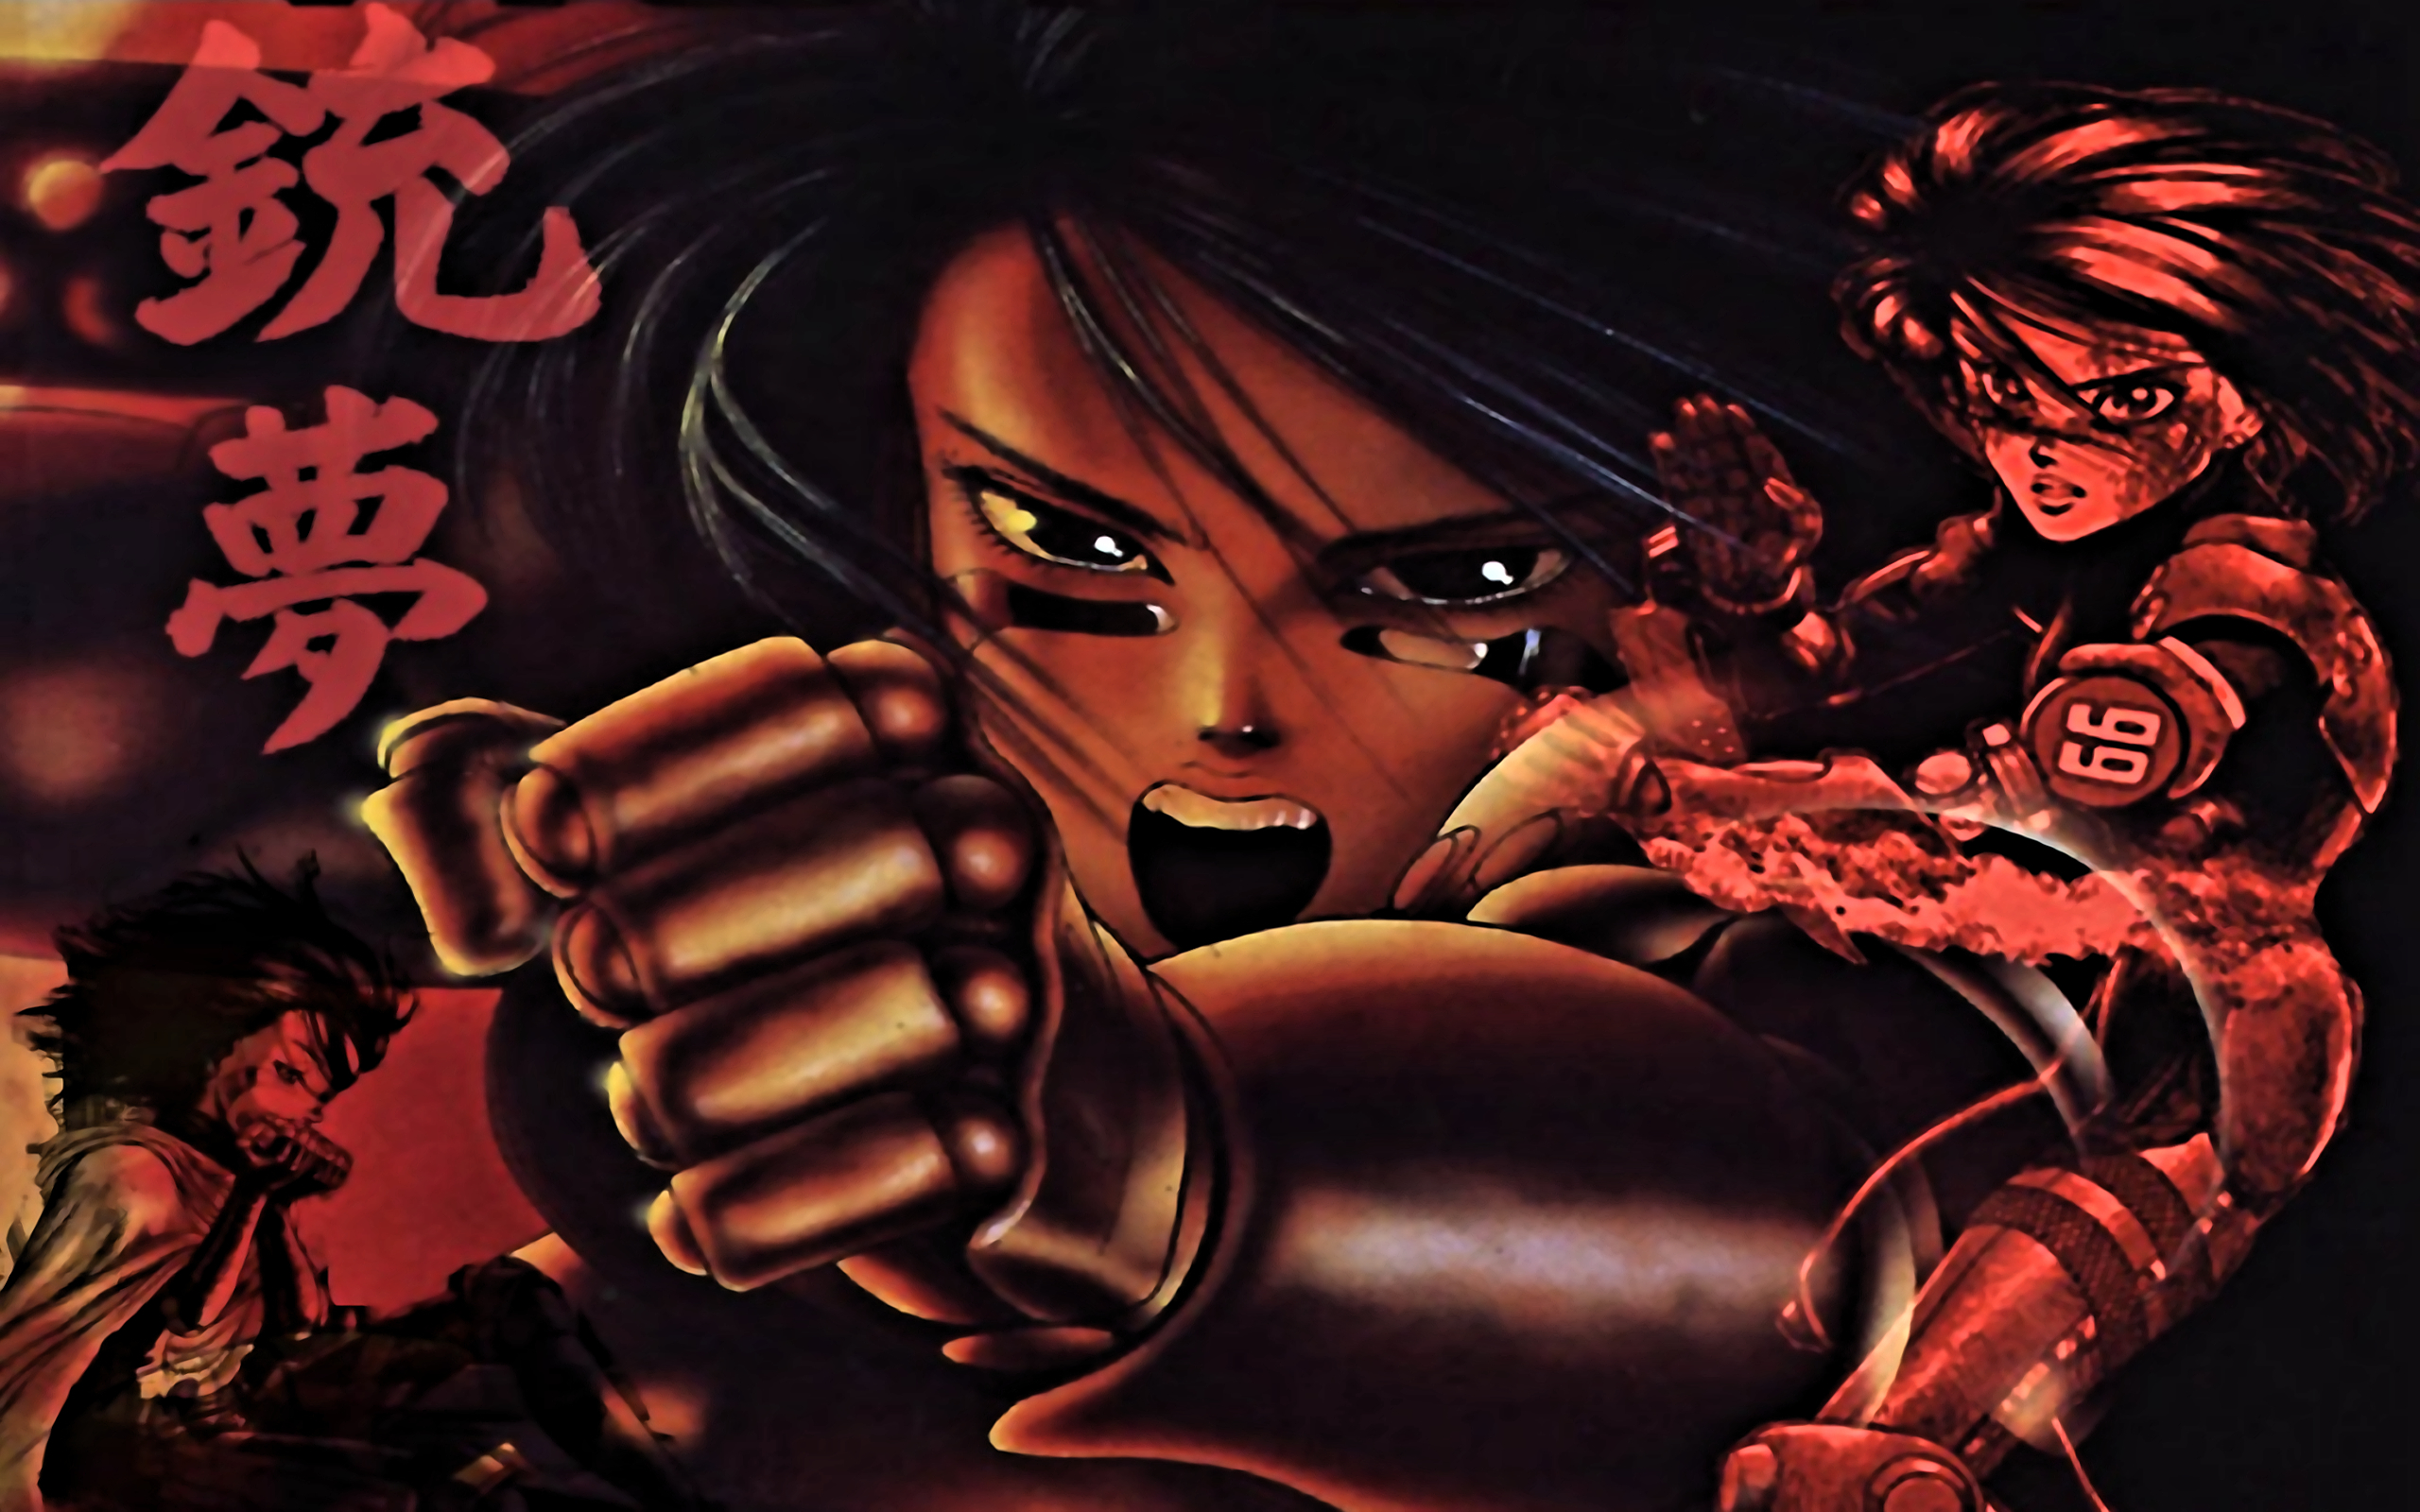 Gunnm battle angel alita HD Wallpaper